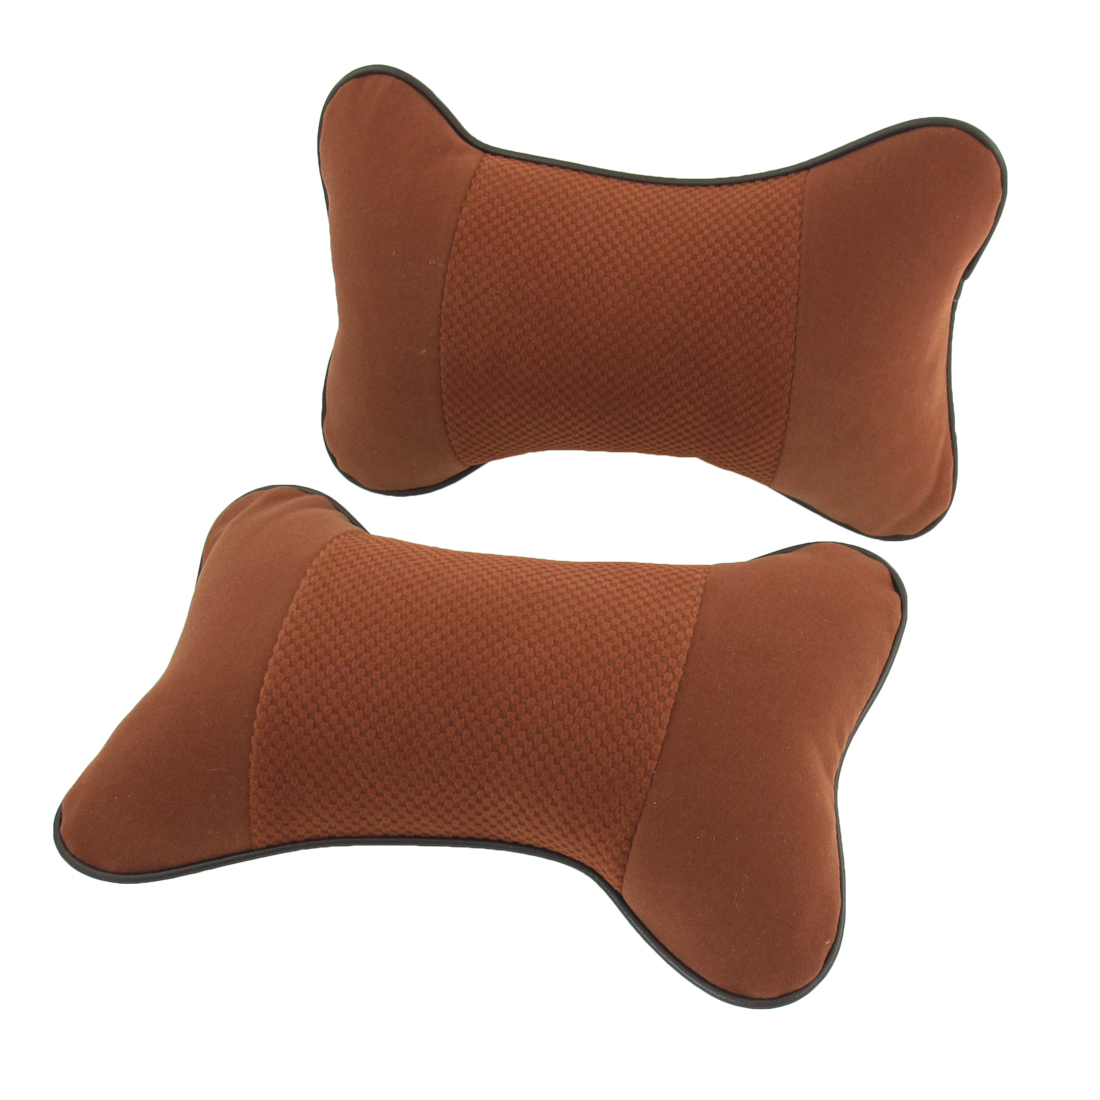 2 Pcs Brick Red Flannel Neck Head Massage Support Pad Pillows for Car Driver